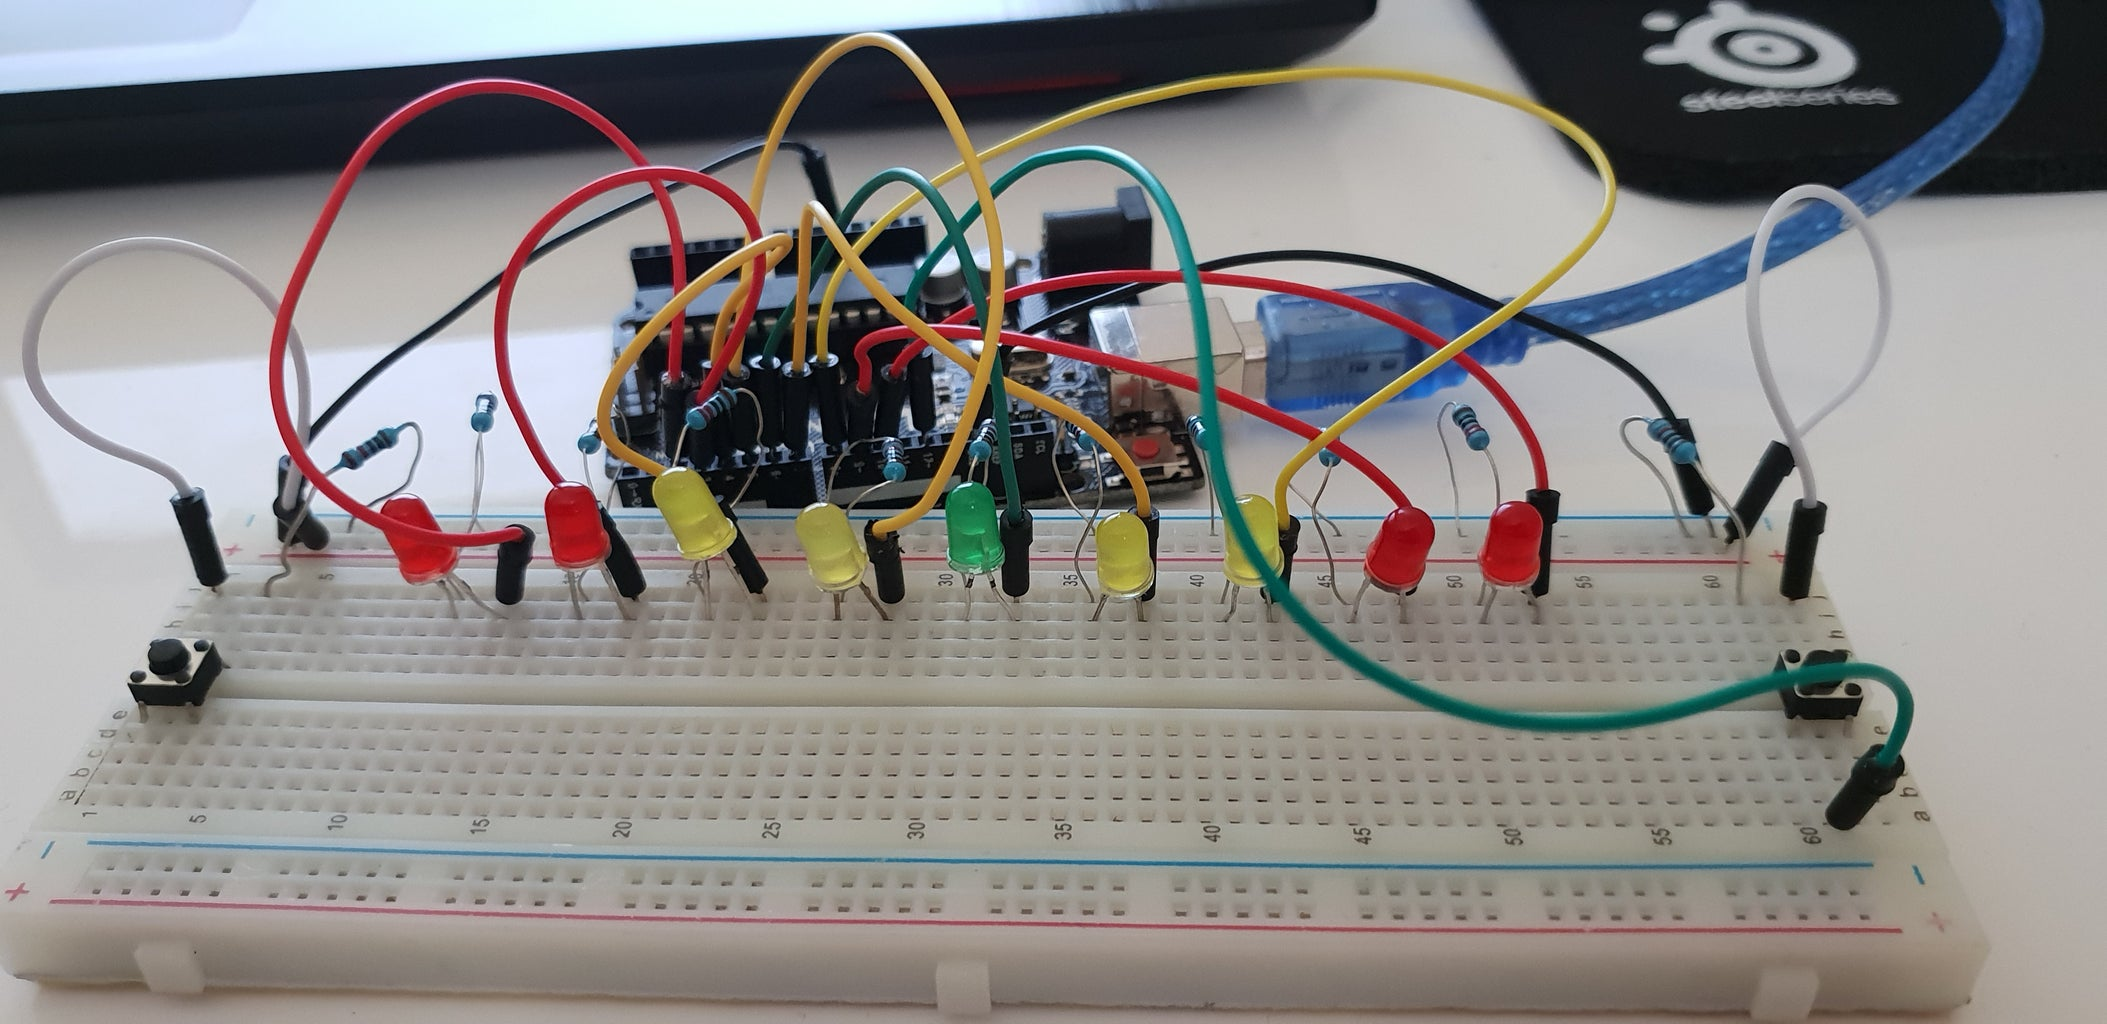 Place a Male to Male 20cm Jumper Cable Under the Bottom Left Leg of the Right Push-Button and Connect It to Number 12 on the Arduino UNO Board As Shown Below